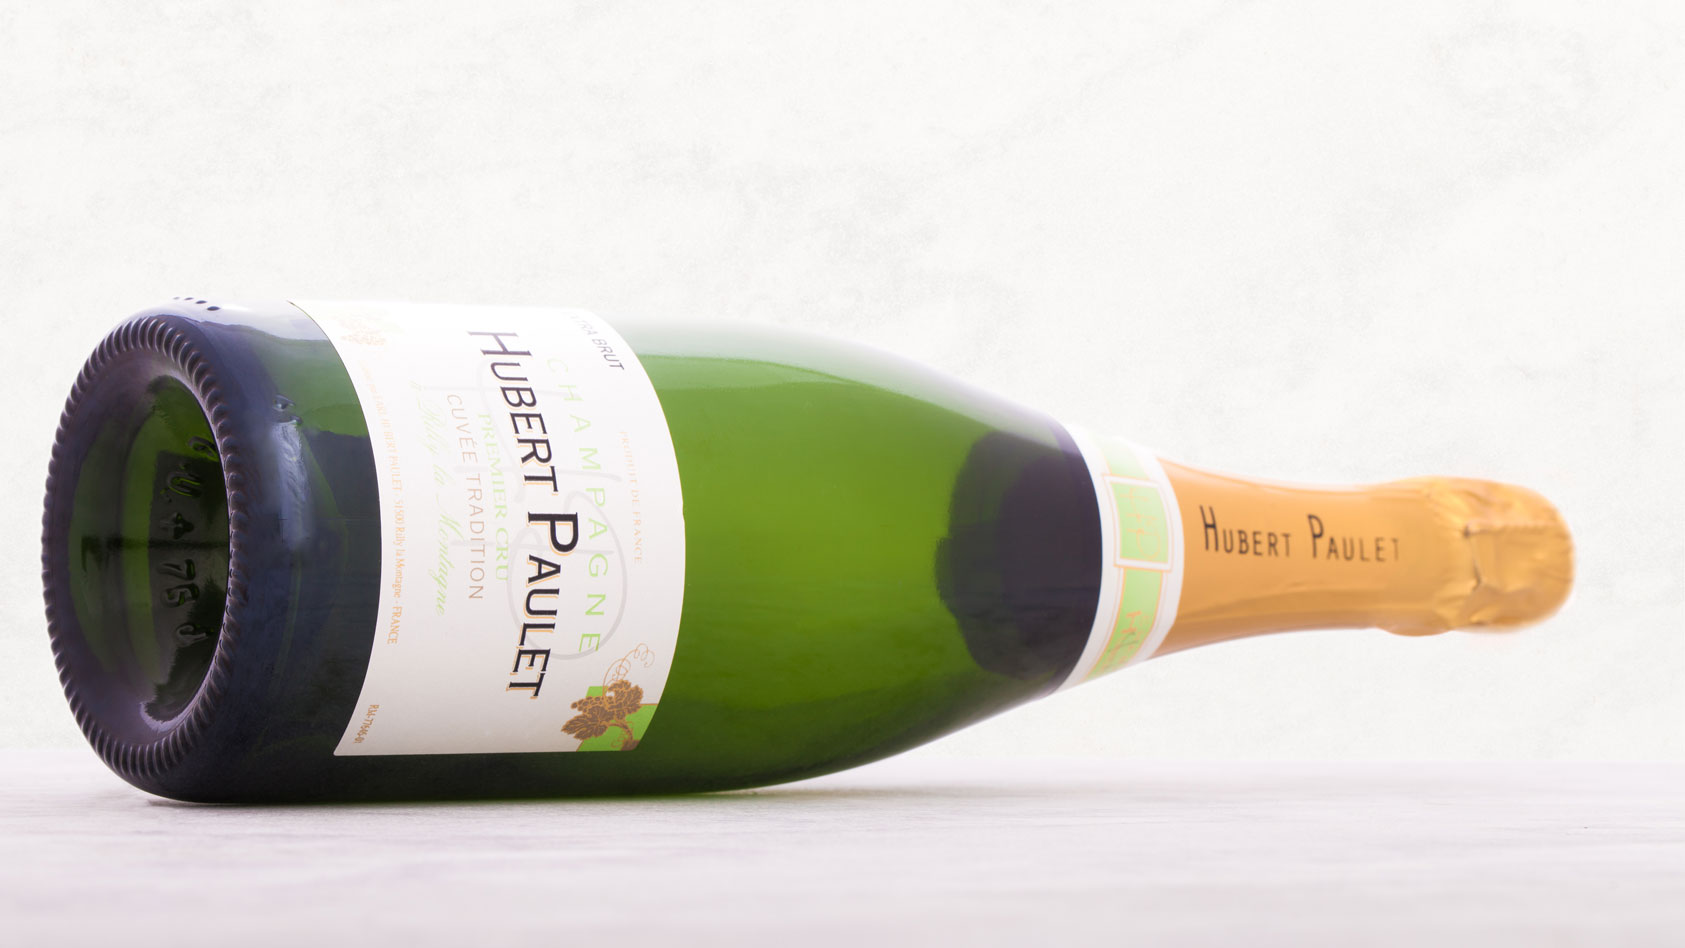 Hubert Paulet,  Brut tradition